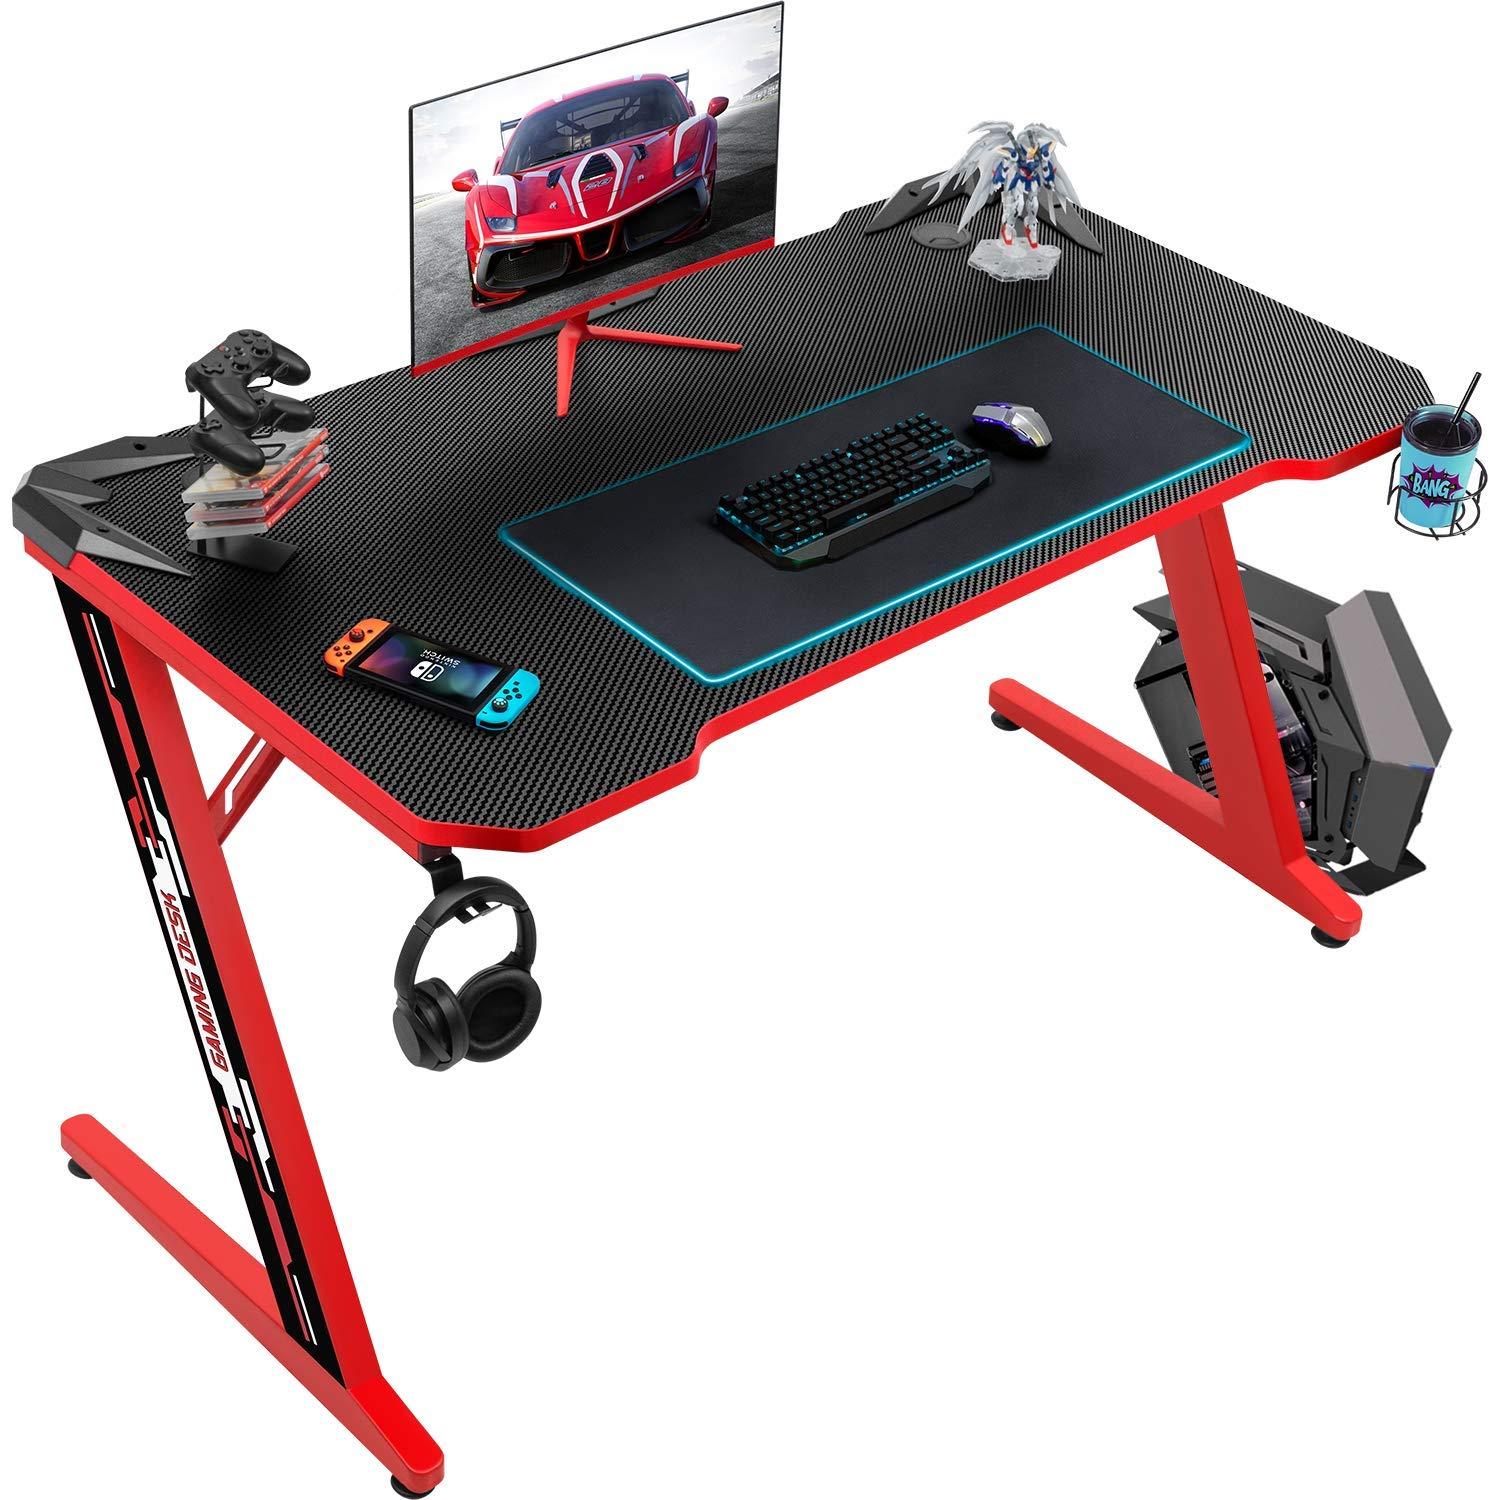 Flamaker Gaming Desk Gaming Table Computer Desk Gamer Table Z Shape Game Station with Large Carbon Fiber Surface, Cup Holder & Headphone : Amazon.in: Computers & Accessories